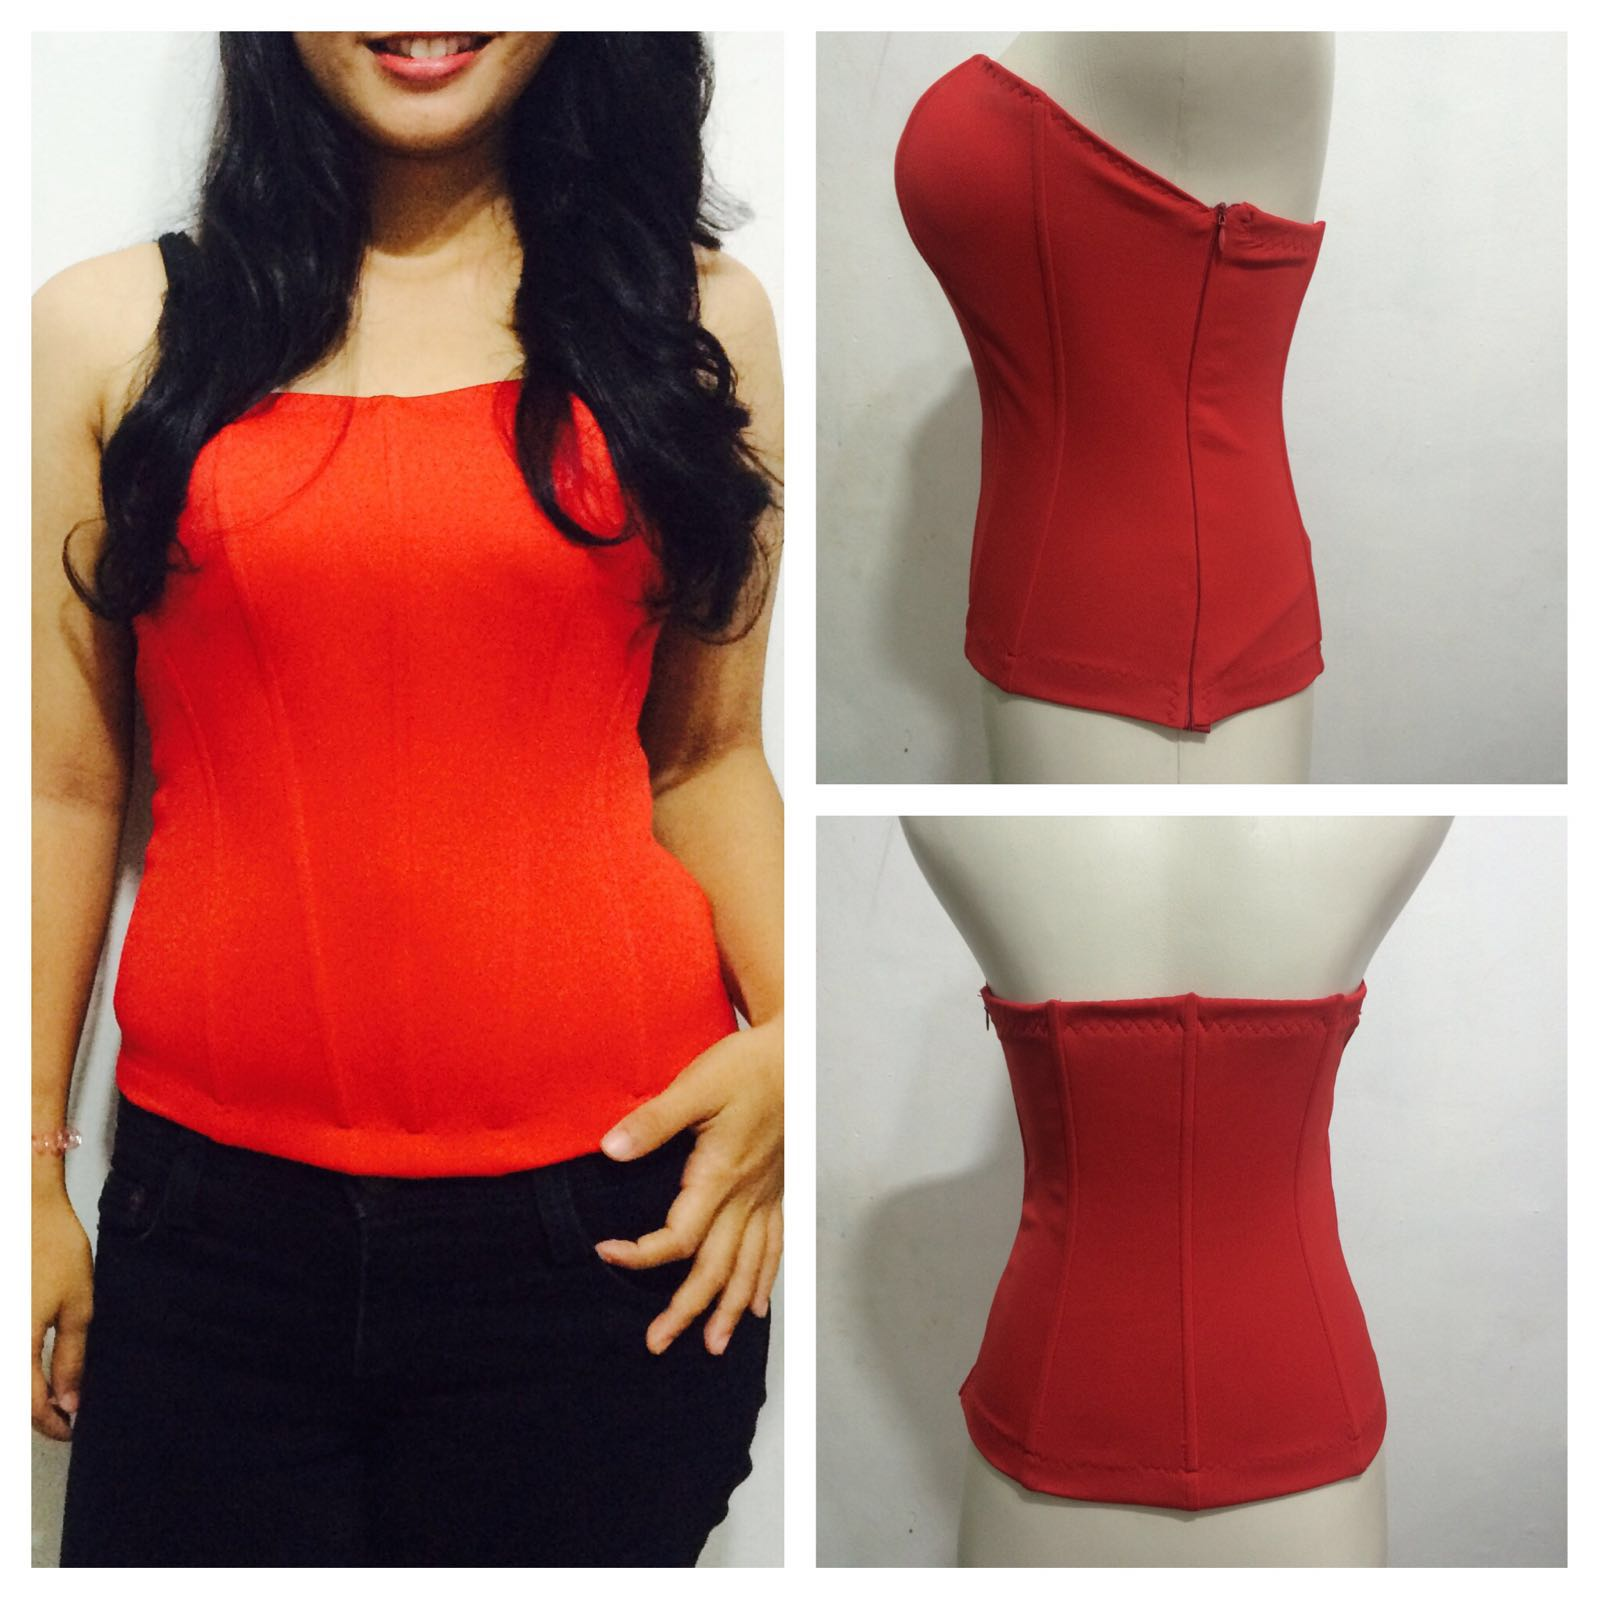 Bustier  jual lingerie murah basic tulang 8 plus cup polyester deb3fc4ad1